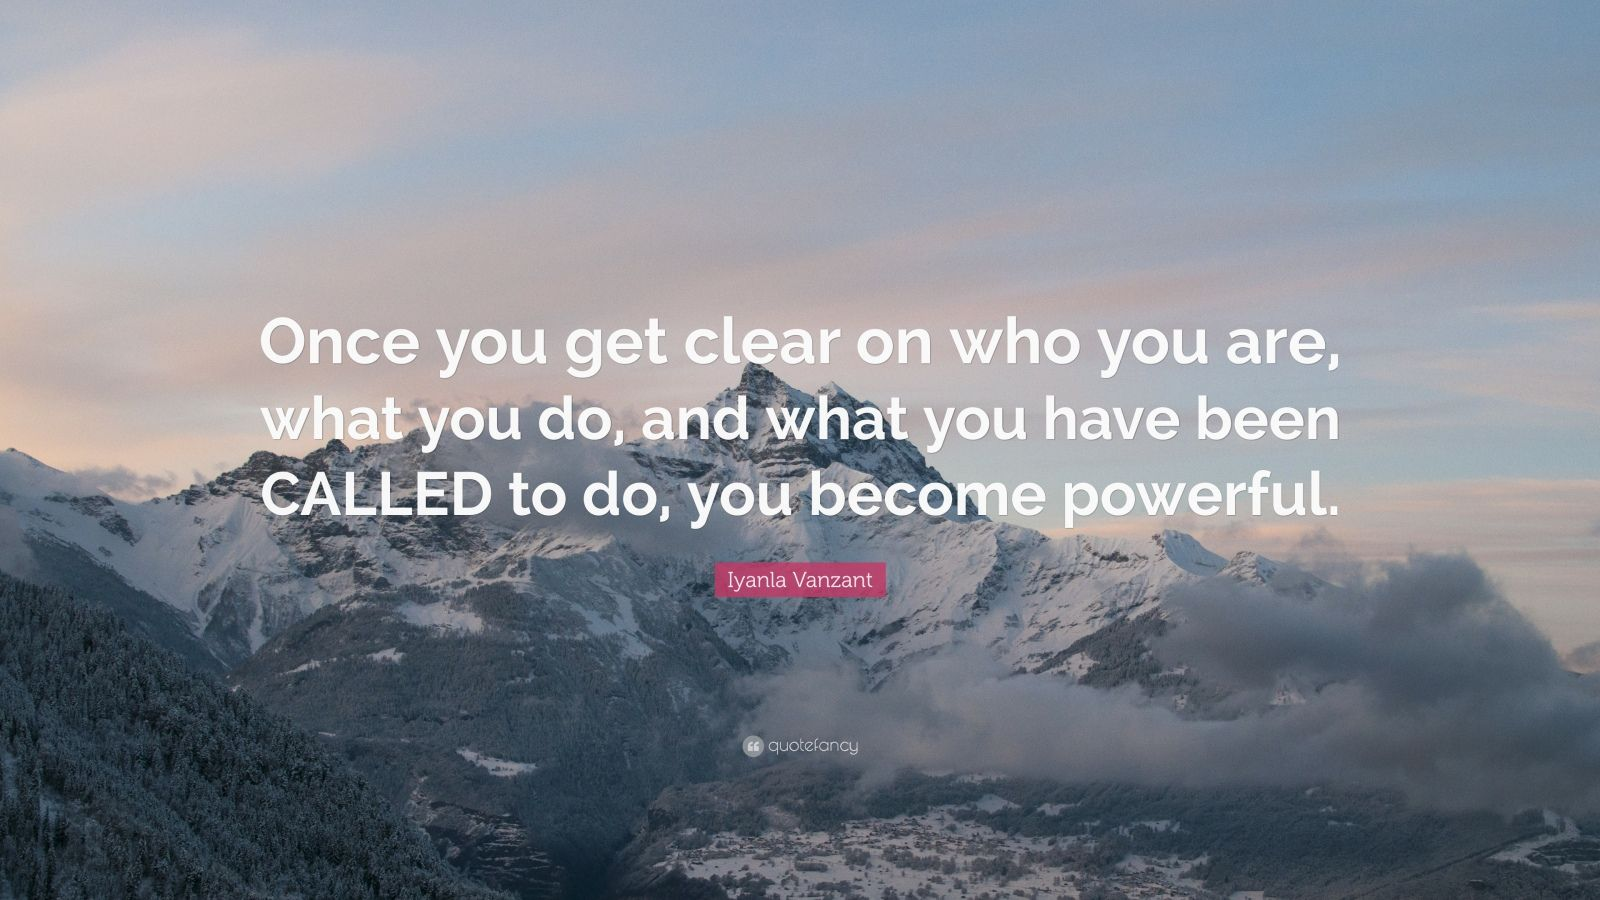 """Iyanla Vanzant Quote: """"Once you get clear on who you are, what you do, and what you have been CALLED to do, you become powerful."""""""